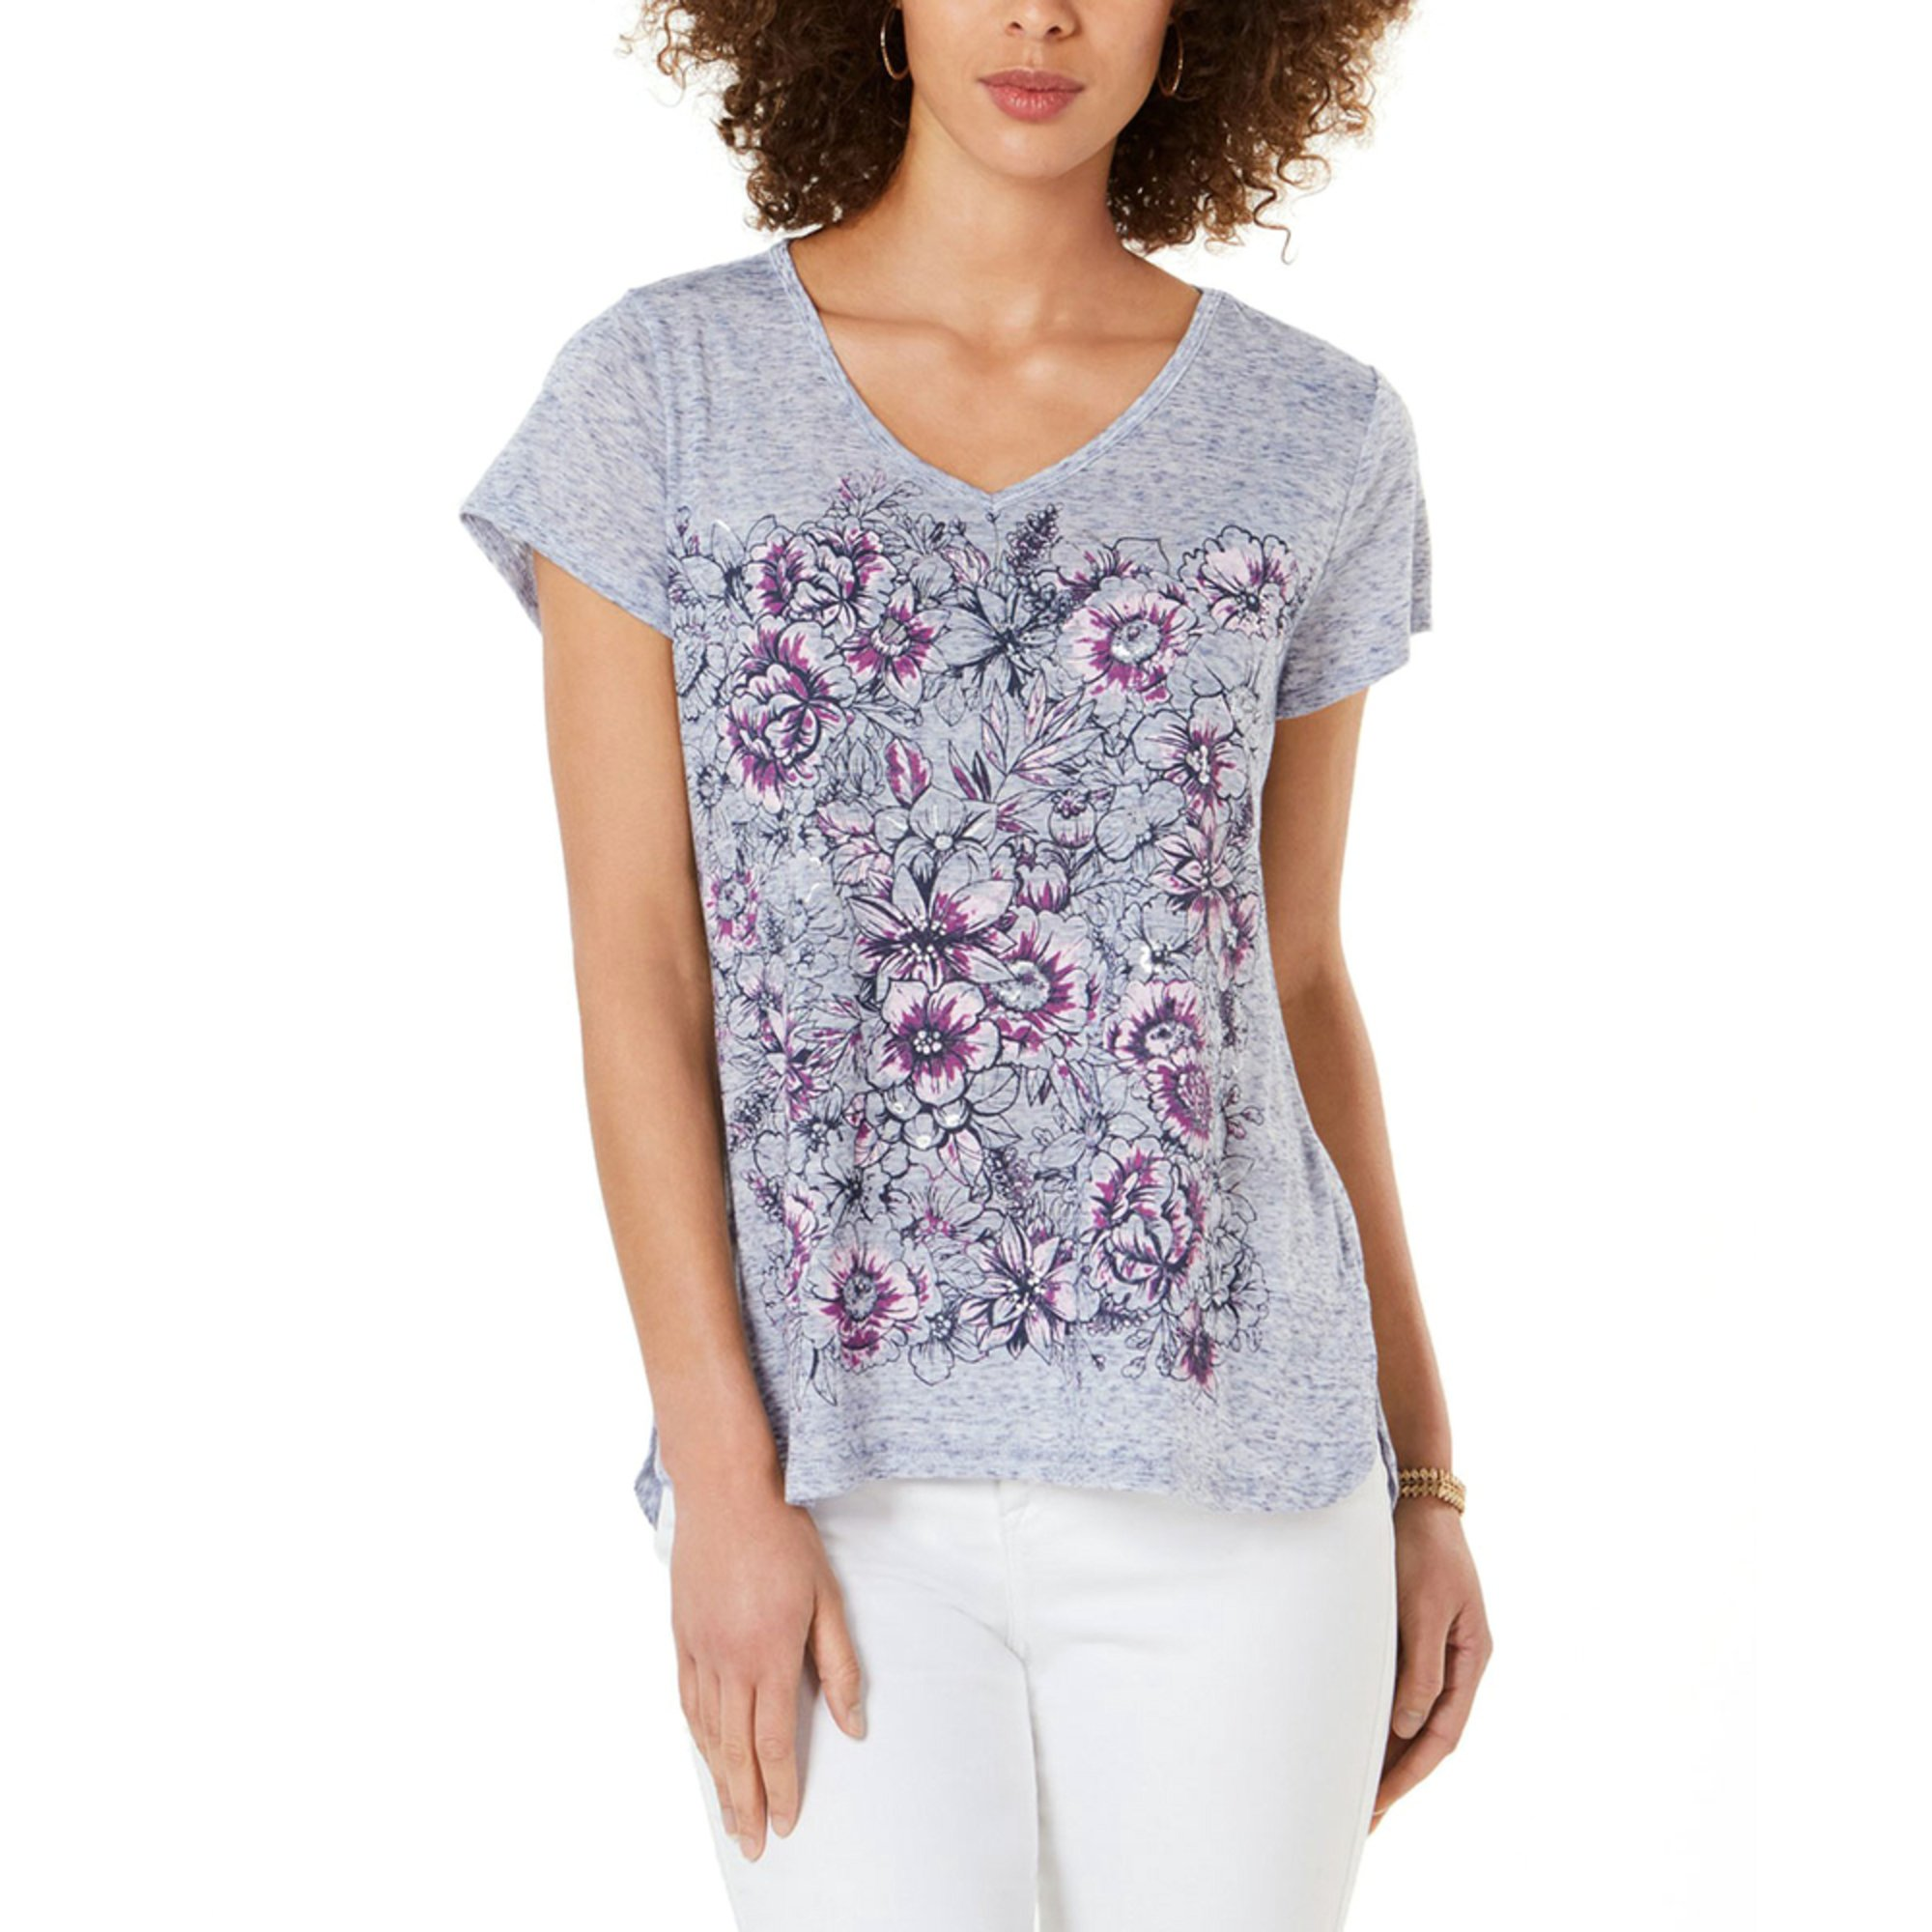 73c9c4fb Style & Co Women's Rose Garden Graphic V-neck Tee | Casual & Dress ...